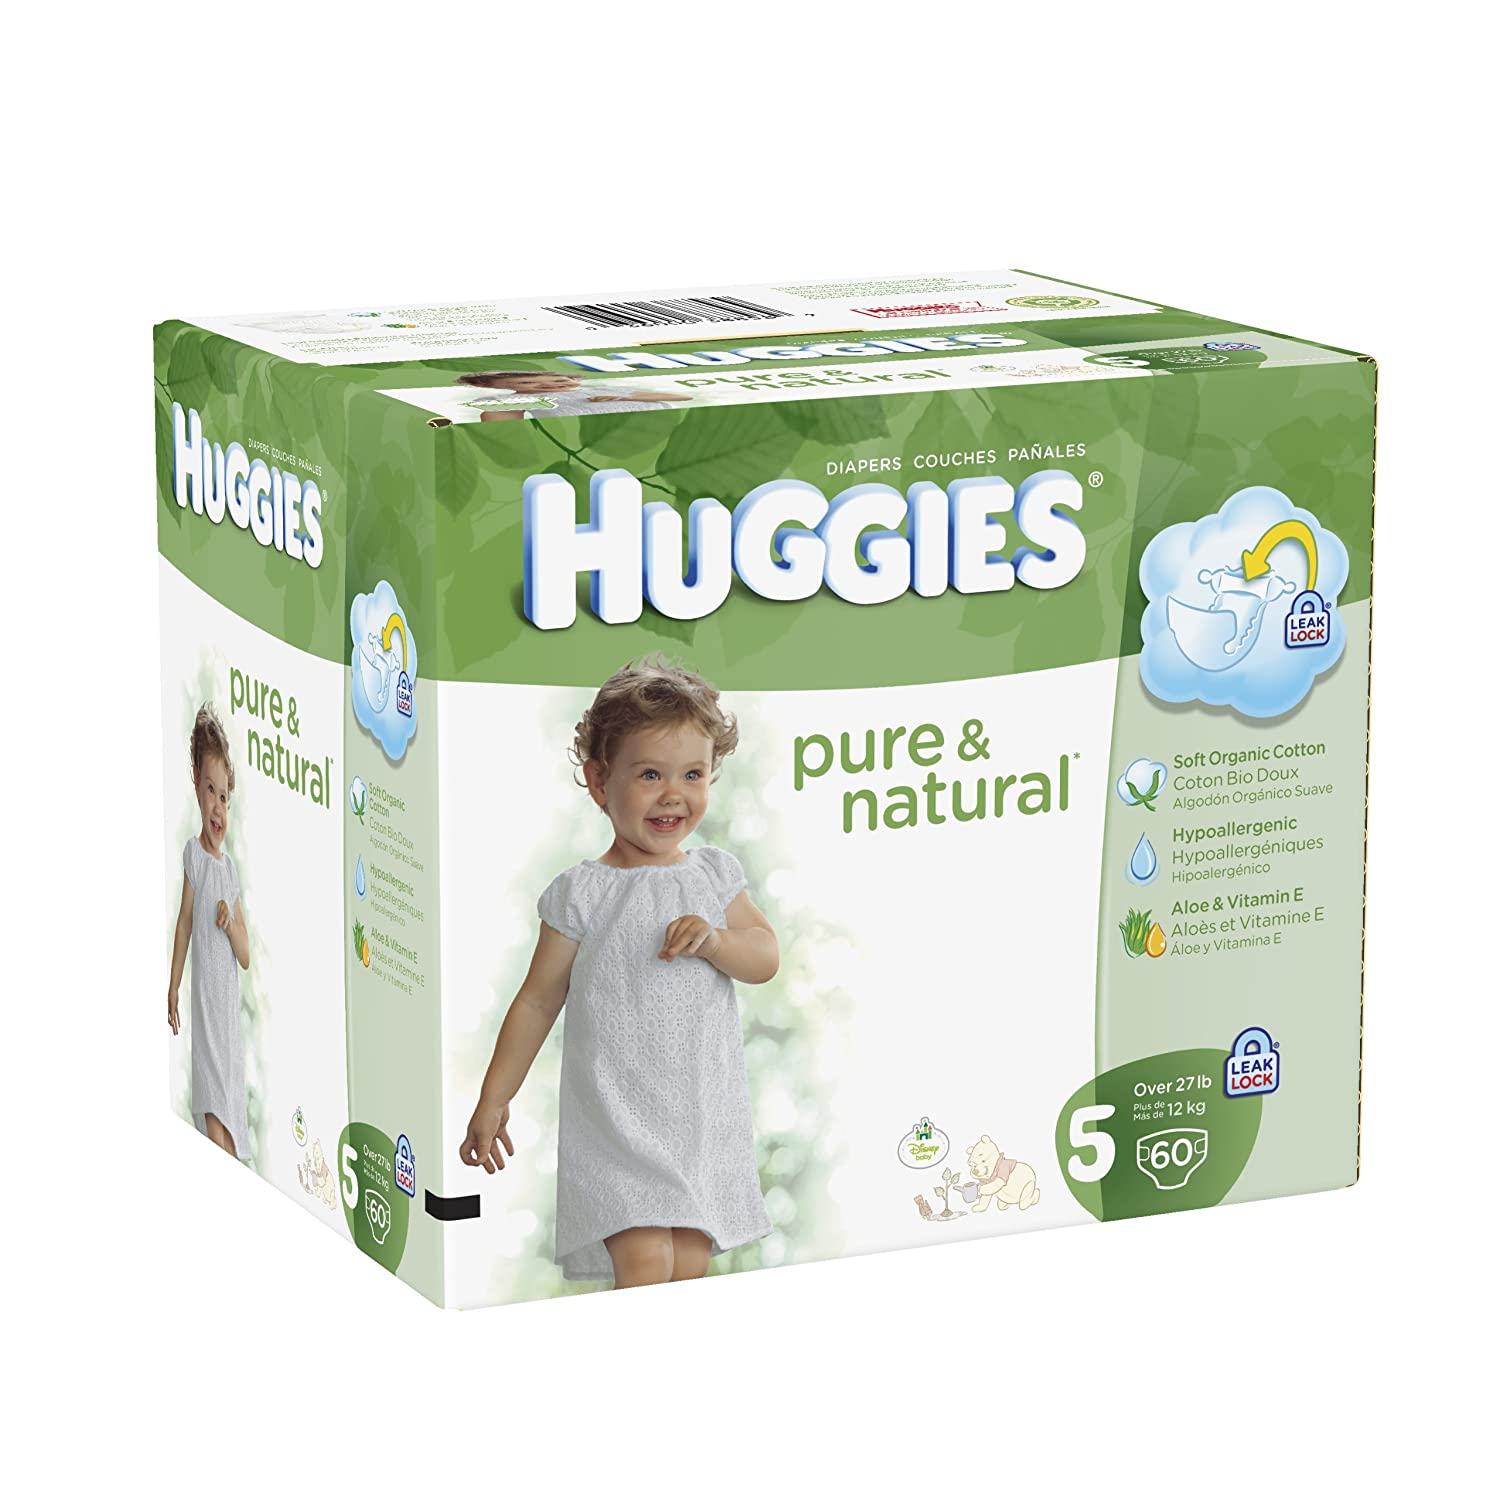 Amazon.com: Huggies Pure & Natural Diapers - Size 5 - 60 ct: Health & Personal Care